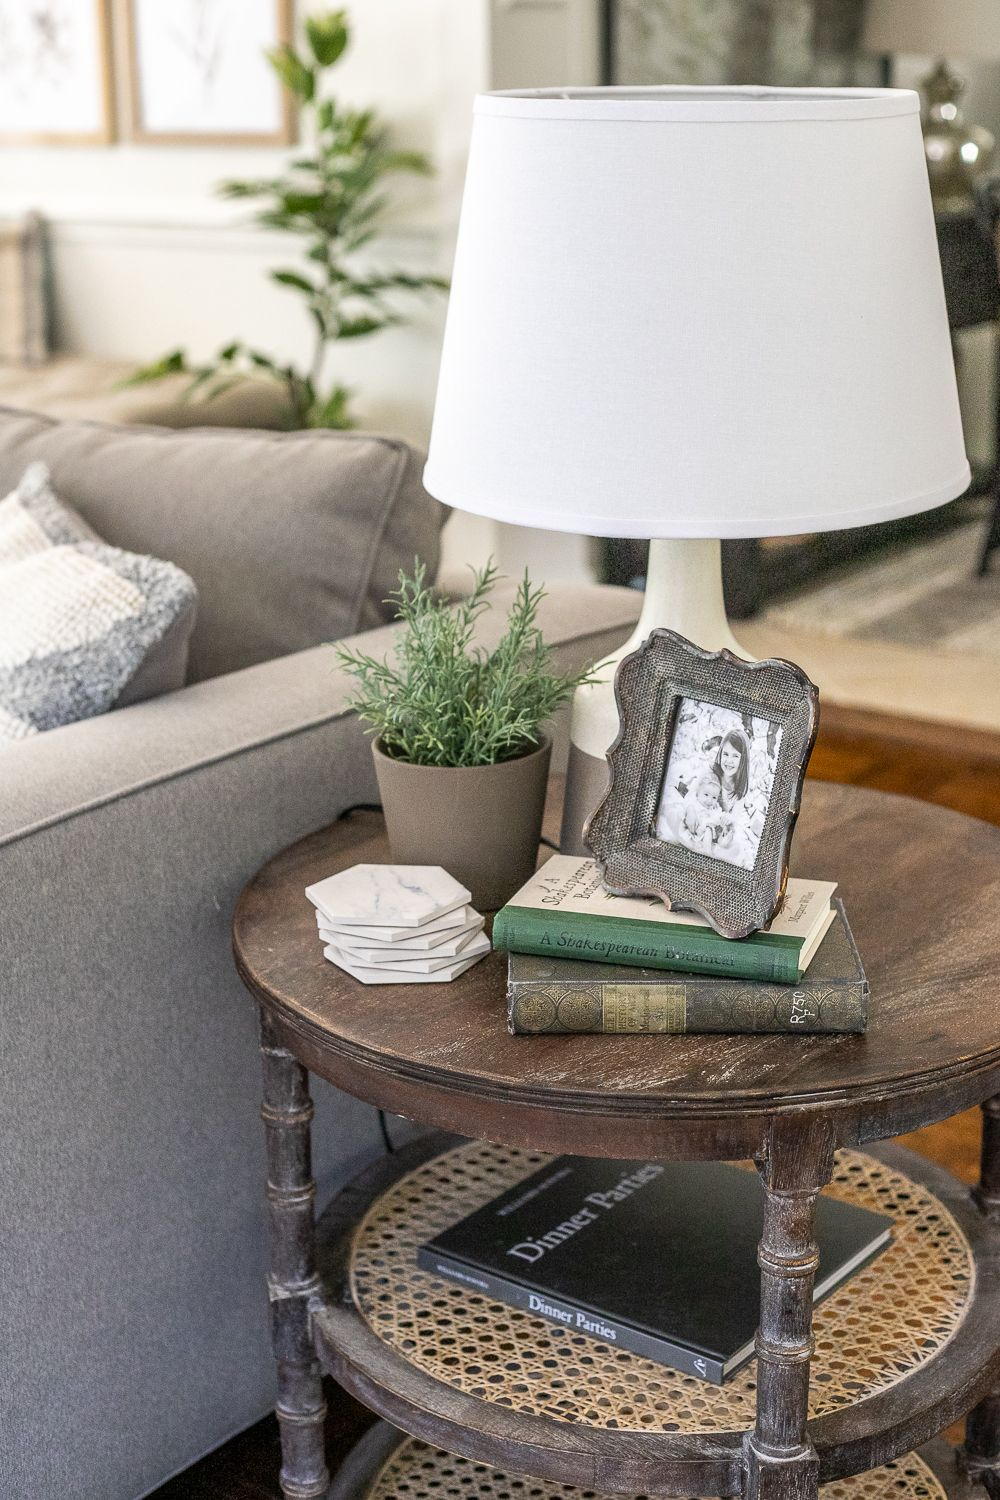 Simplified Decorating How To Style End Tables Bless Er House In 2020 Side Table Decor Table Decor Living Room Side Table Decor Living Room